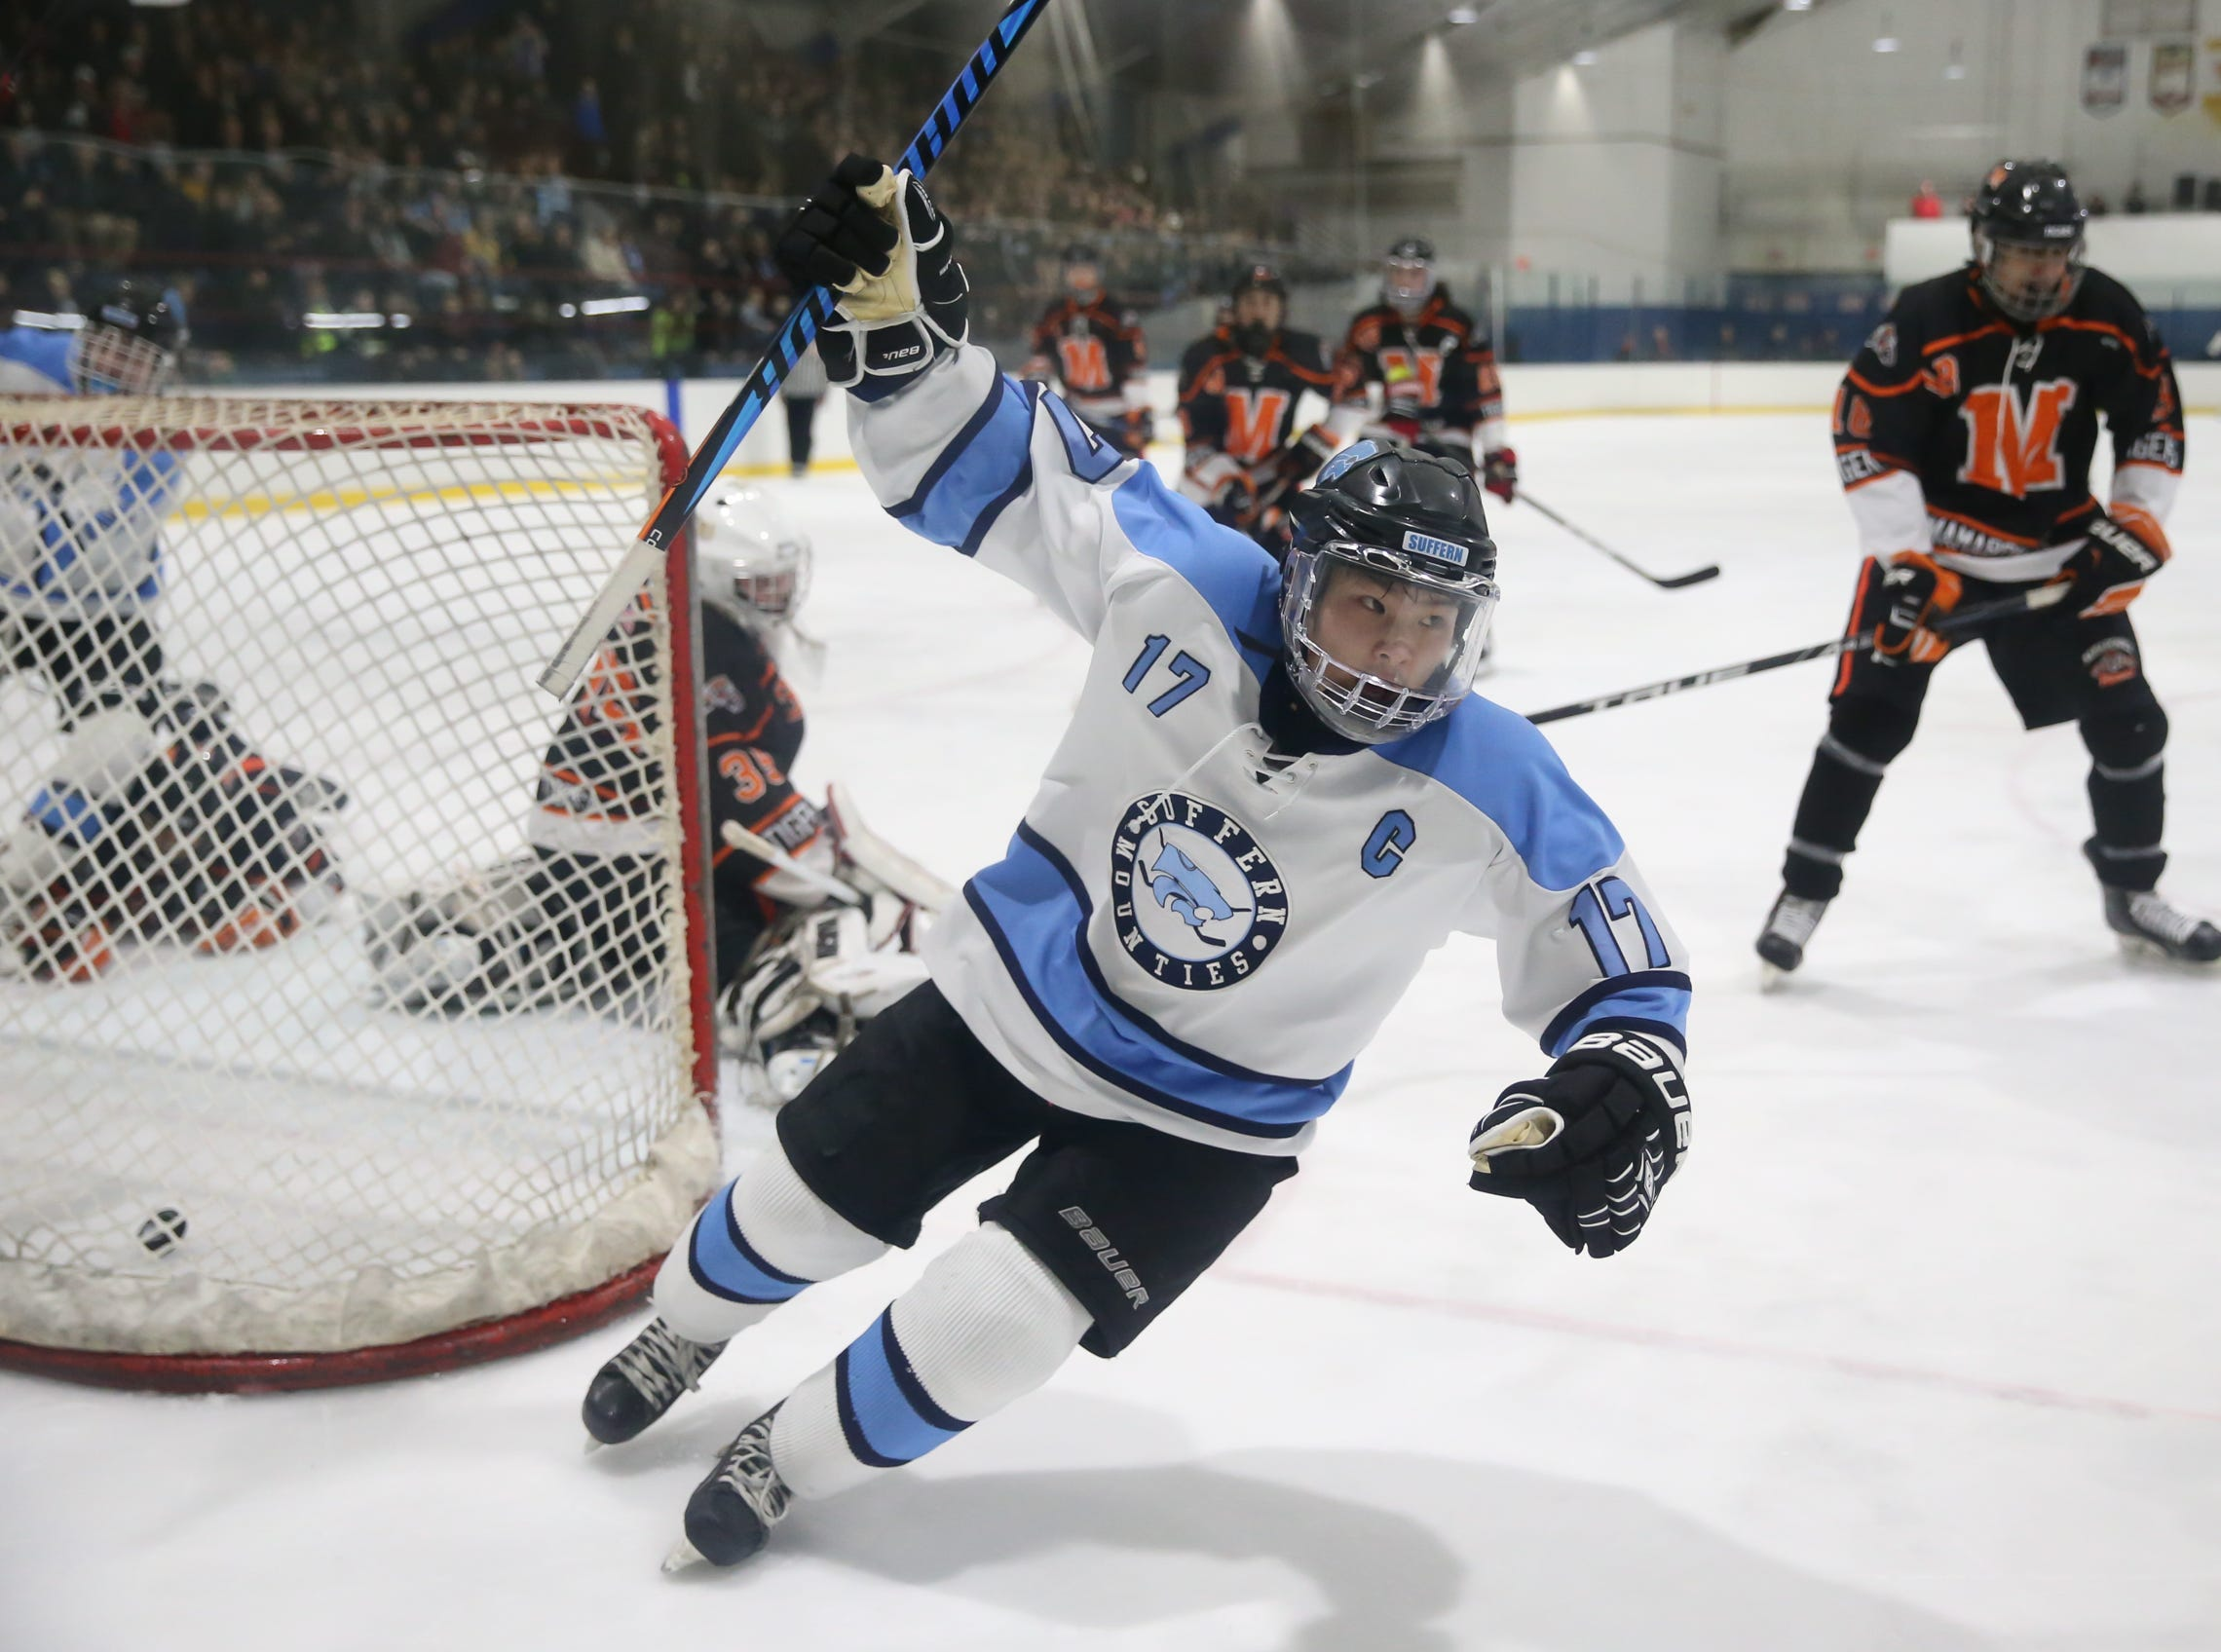 Suffern's Evan Cama (17) reacts after putting the puck past Mamaroneck goalie Jack Fried (35) in the second period of ice hockey action at Sport-O-Rama in Suffern on Friday, January 12, 2018.